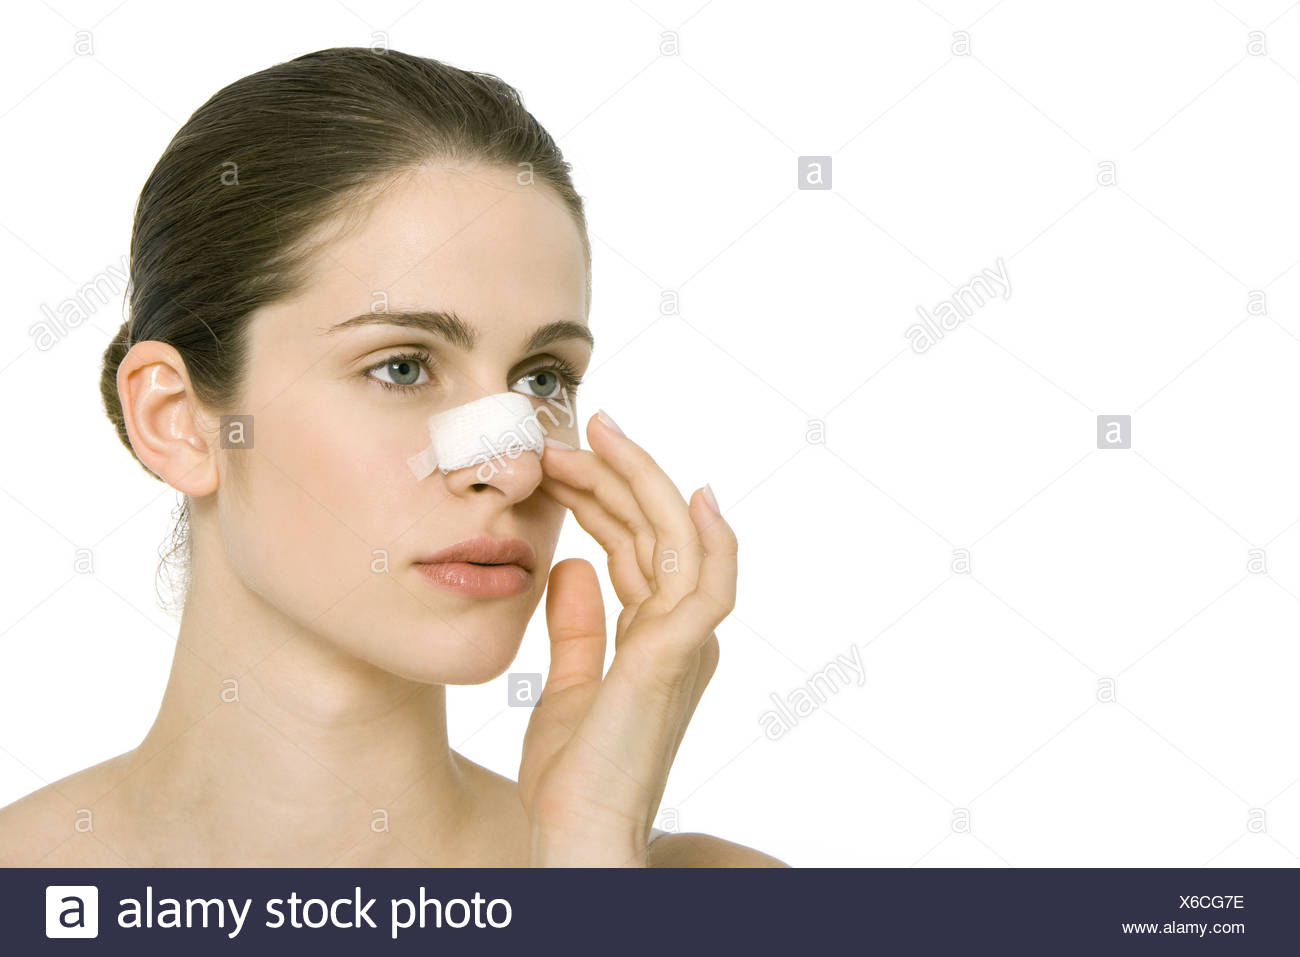 Young woman with bandage on nose, looking away - Stock Image